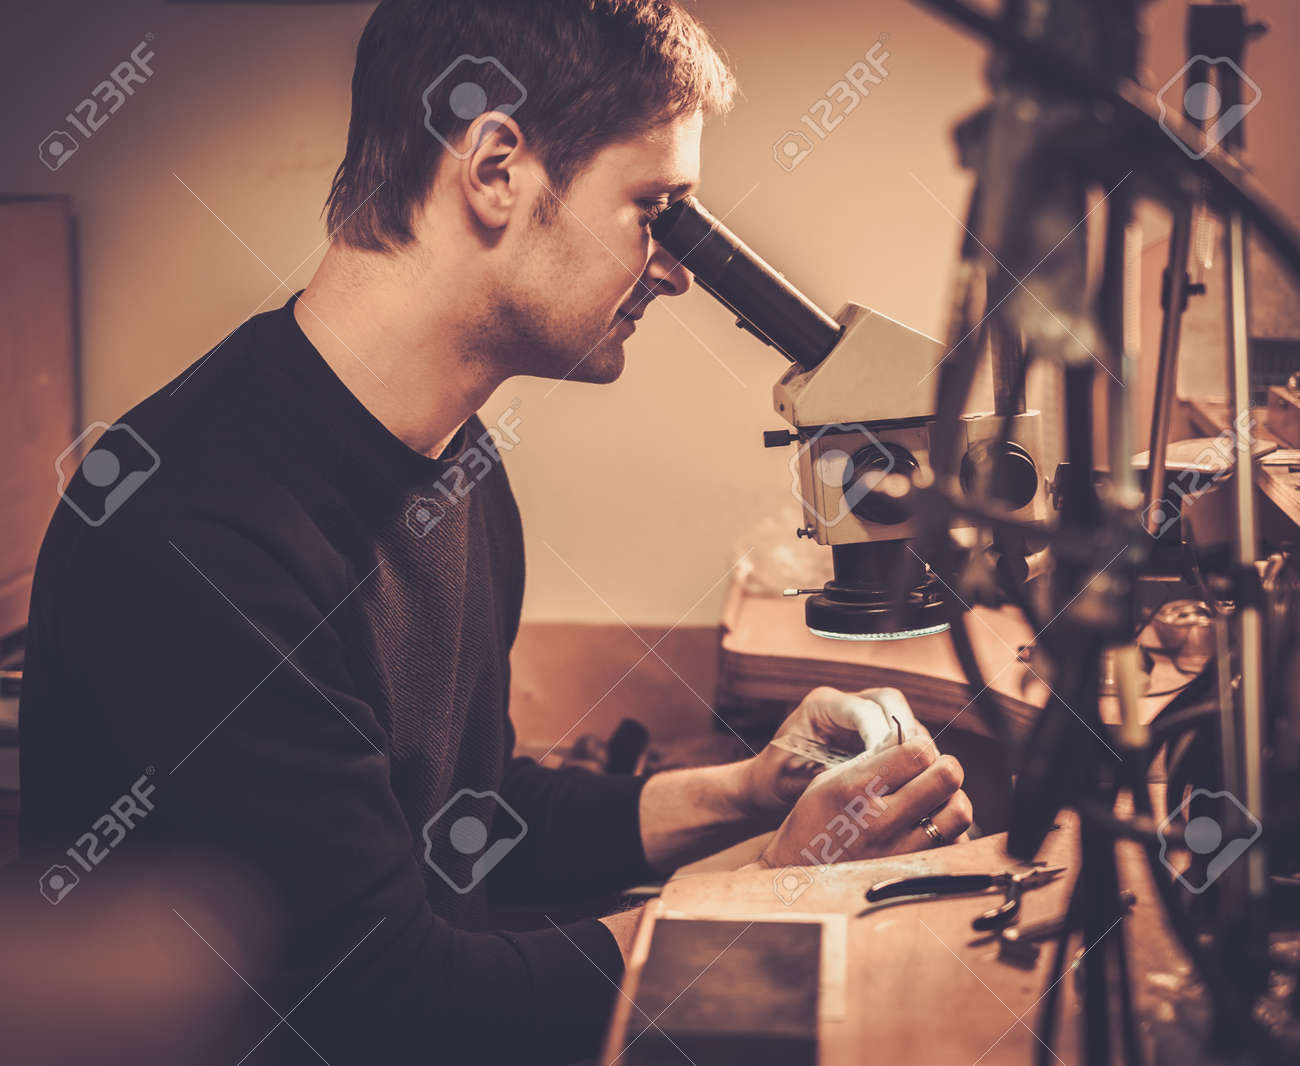 Jeweler looking at the ring through microscope in a workshop. Stock Photo - 50661938